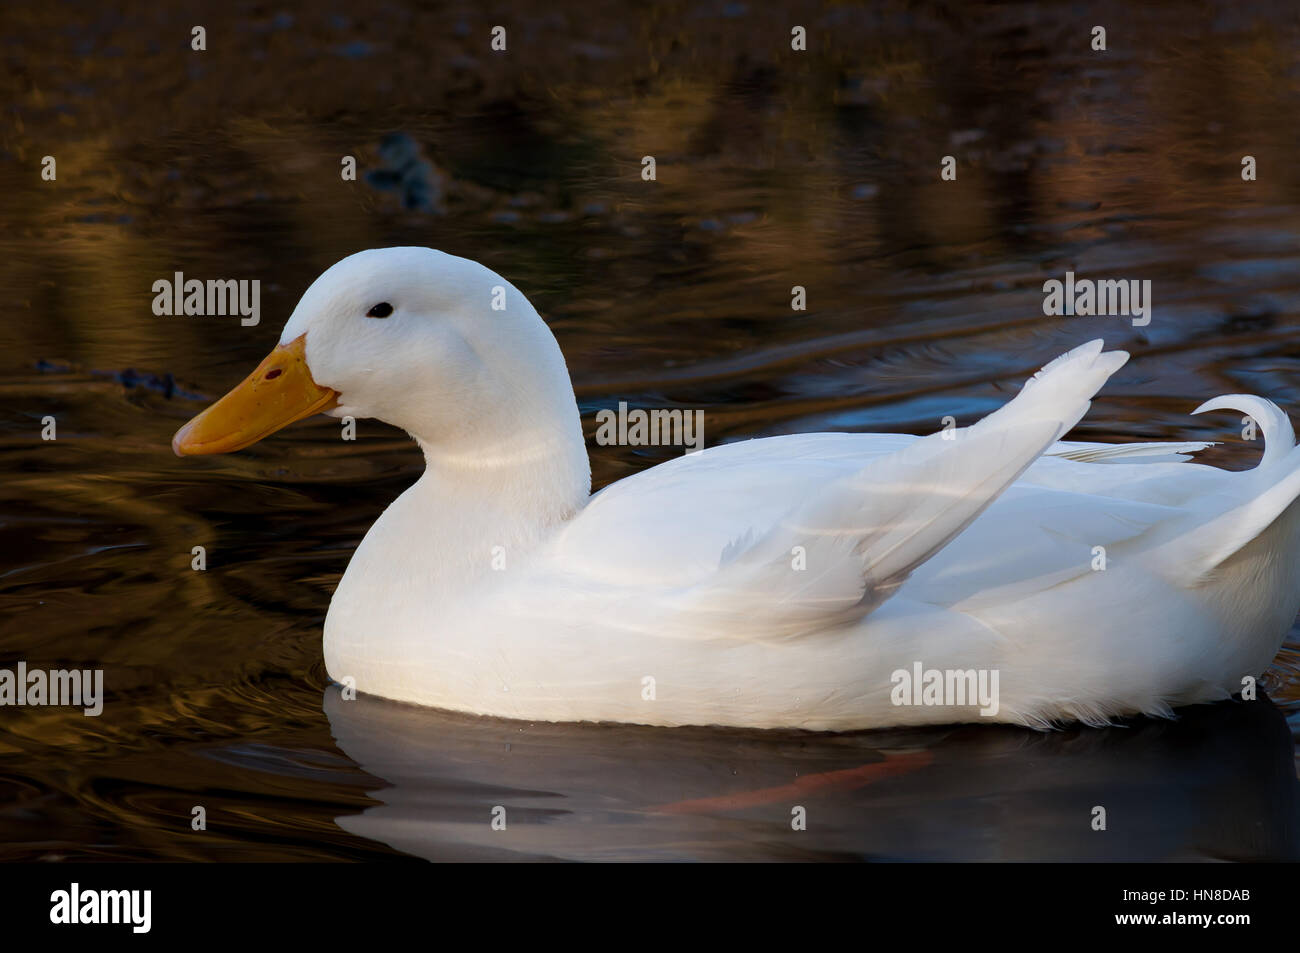 White duck swimming in a pond in Britain. - Stock Image